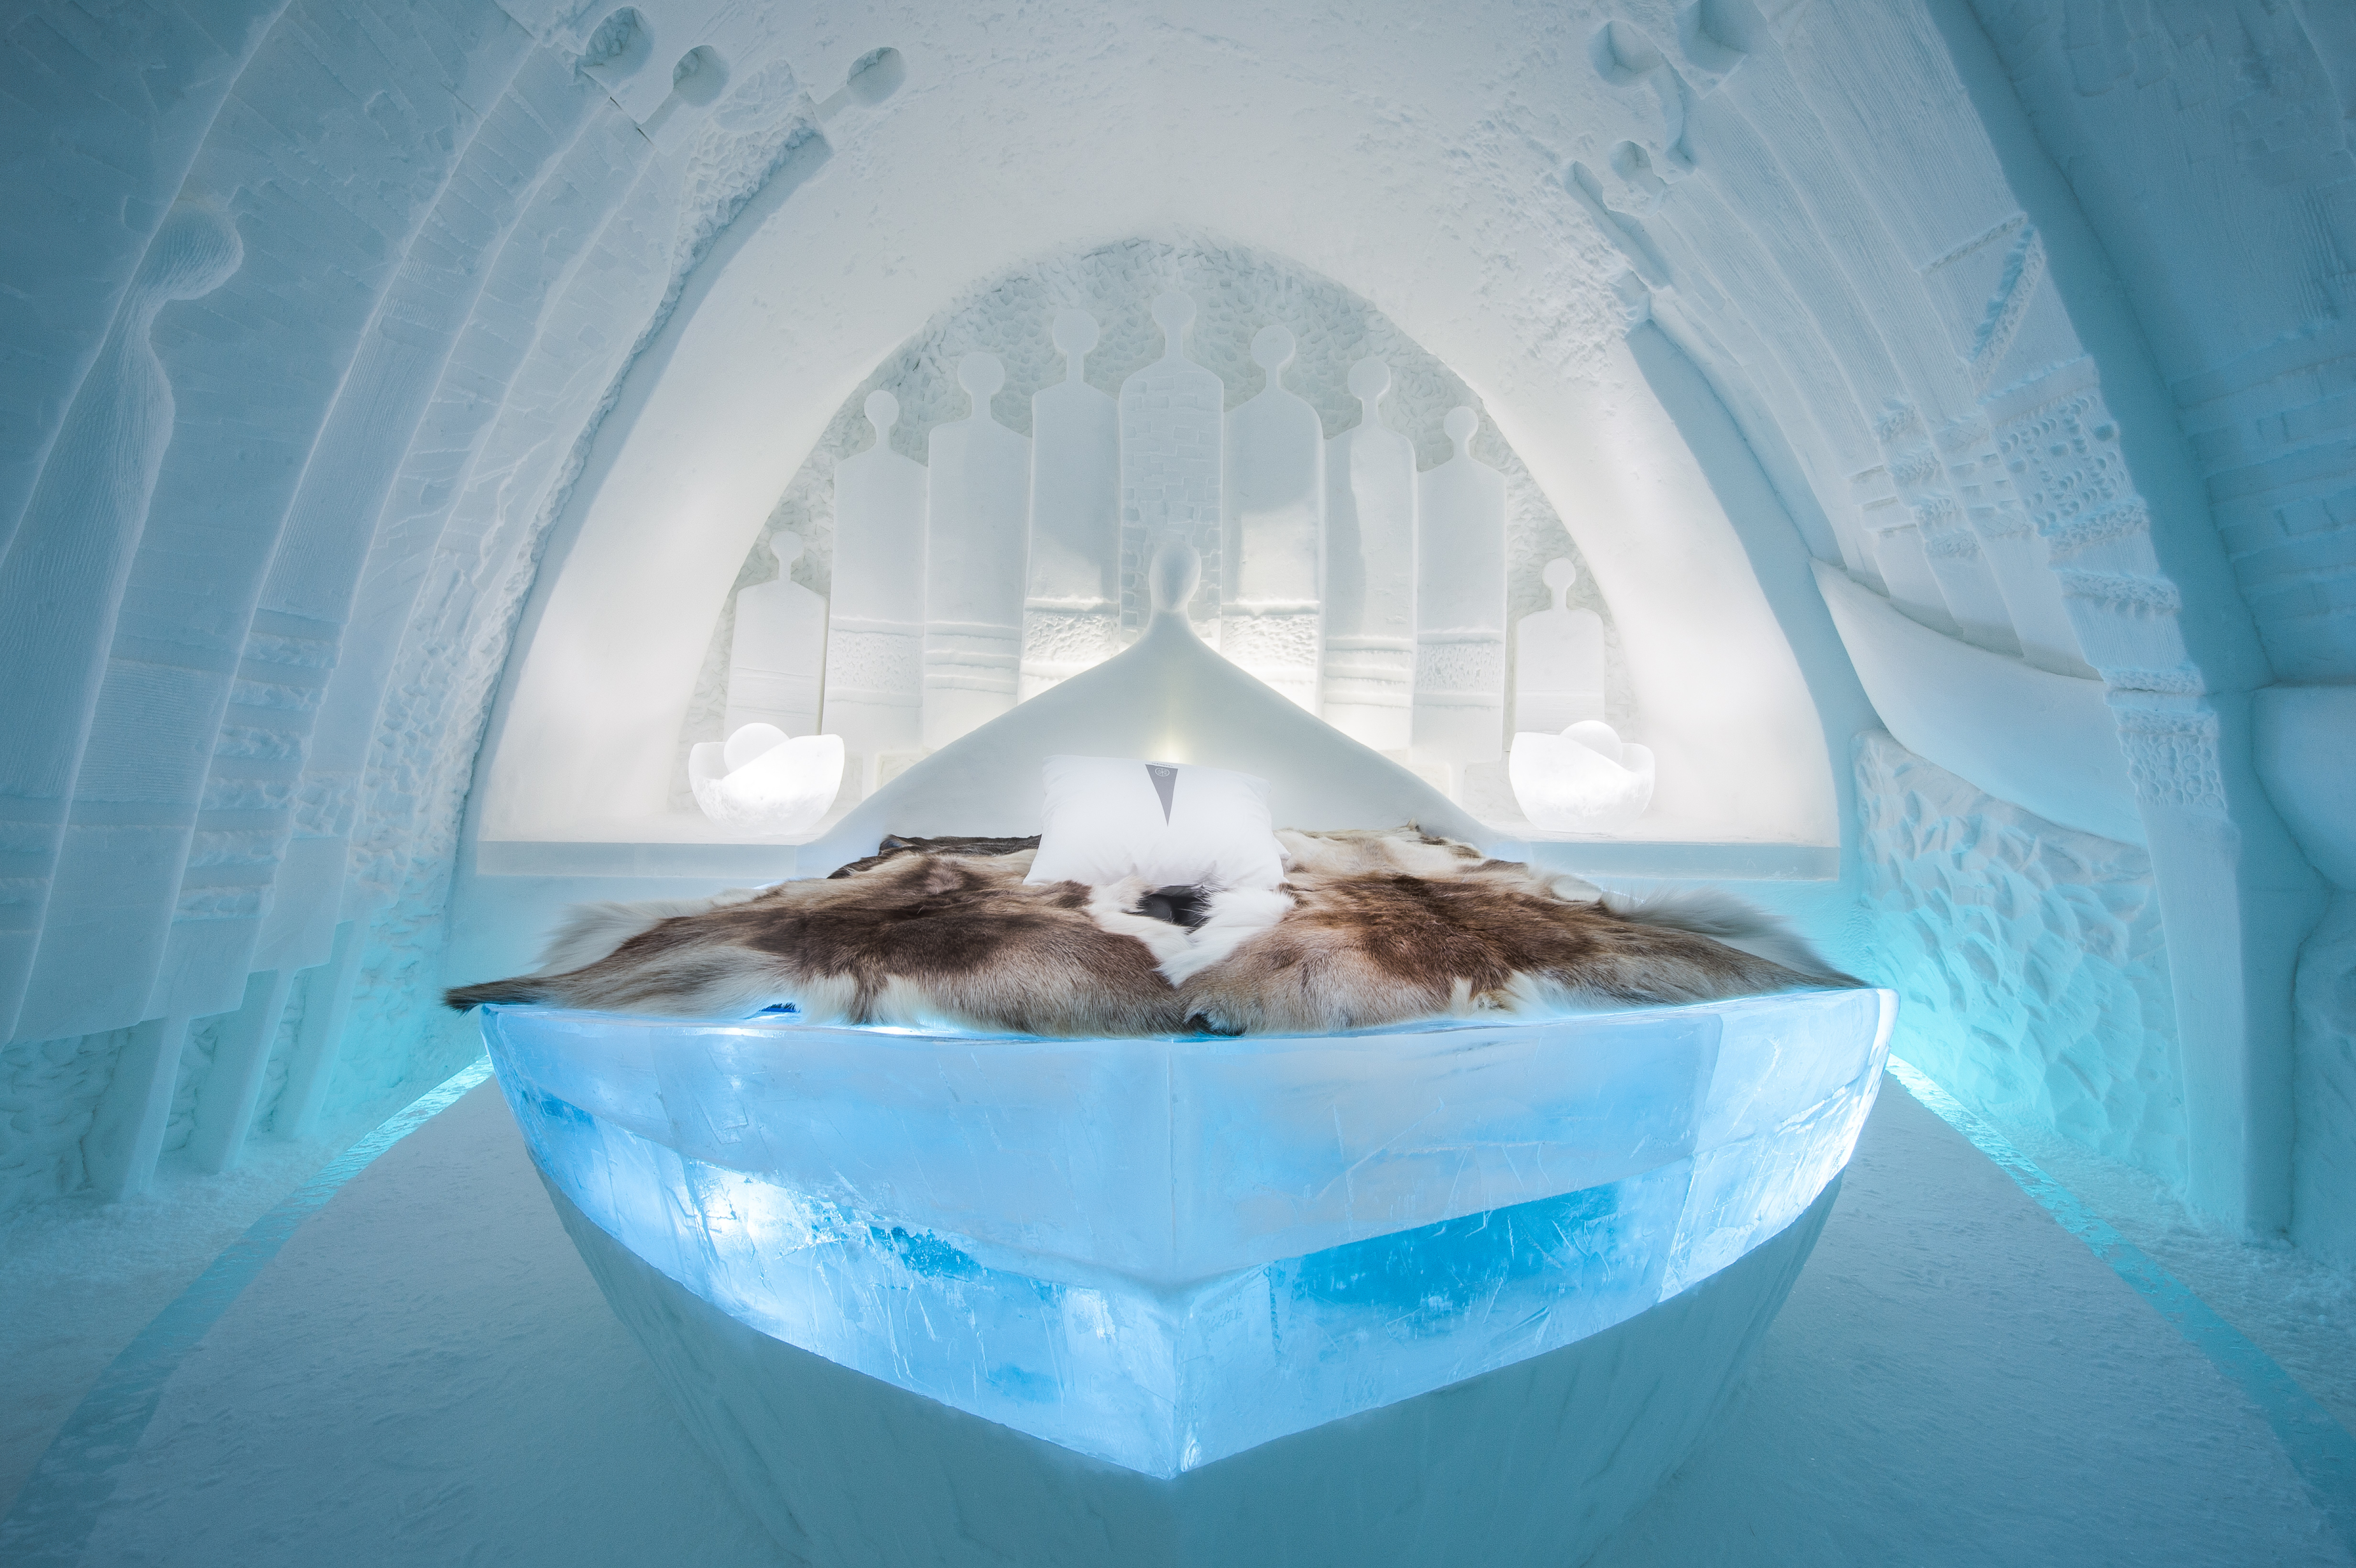 icehotel, sweden, concept hotel, cocotravel, luxury travel